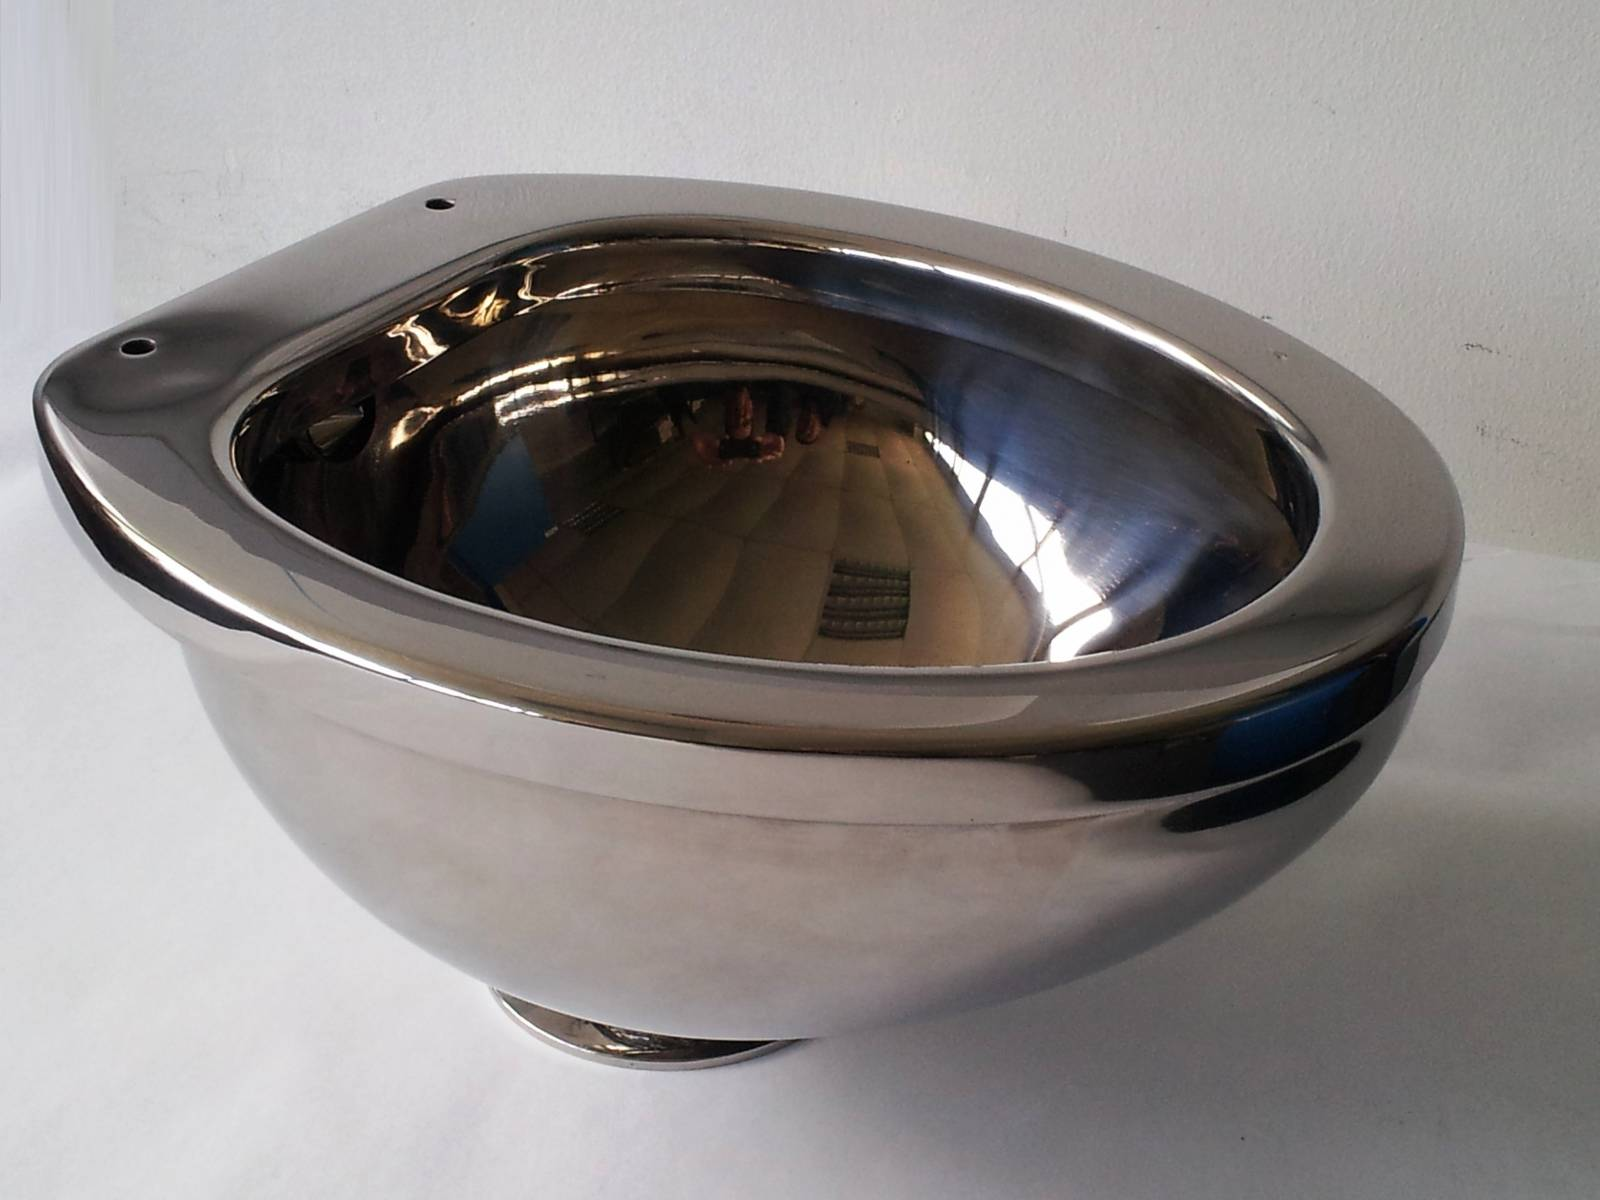 Stainless Steel Toilet Bowl